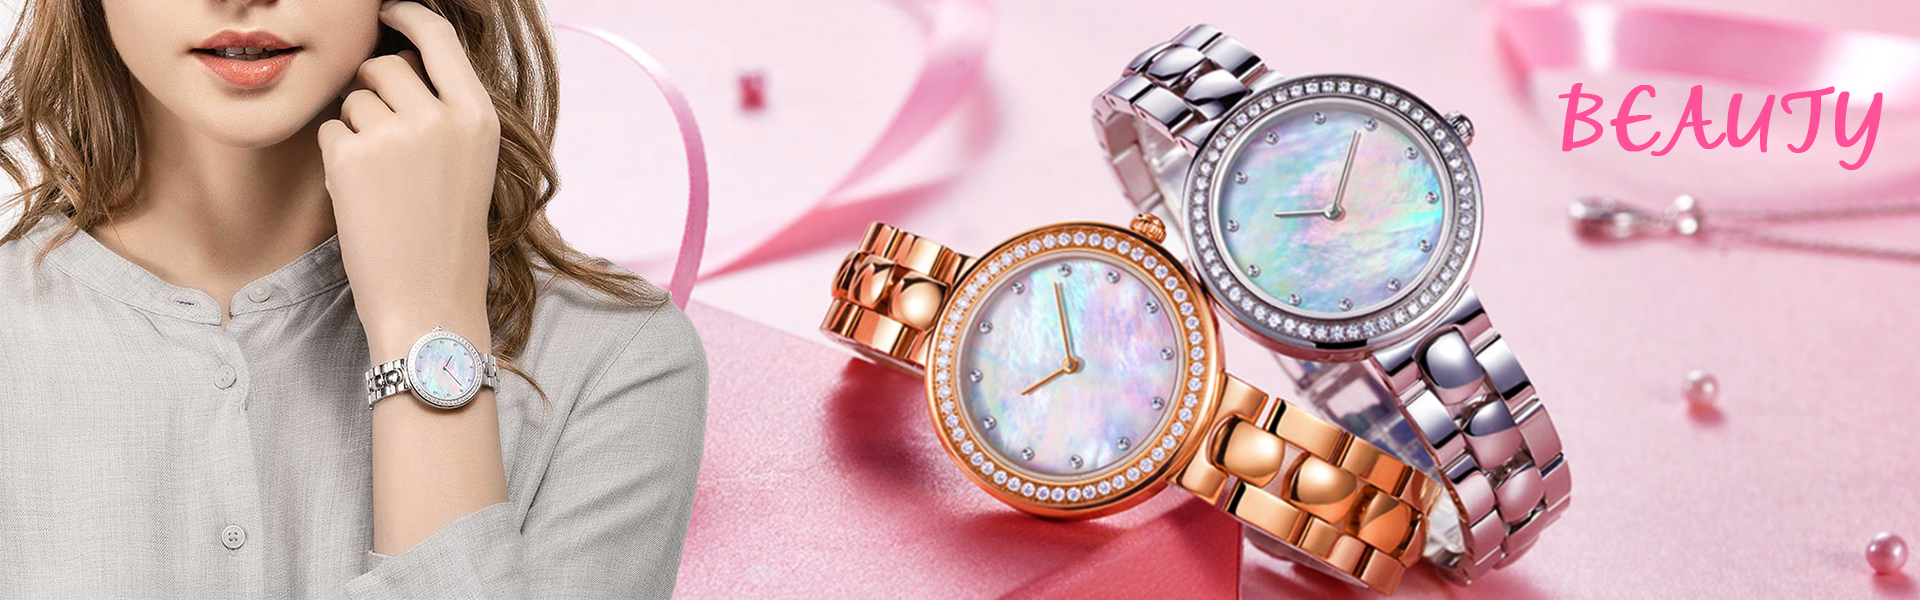 Dongguan Changli Watch Co., Ltd.